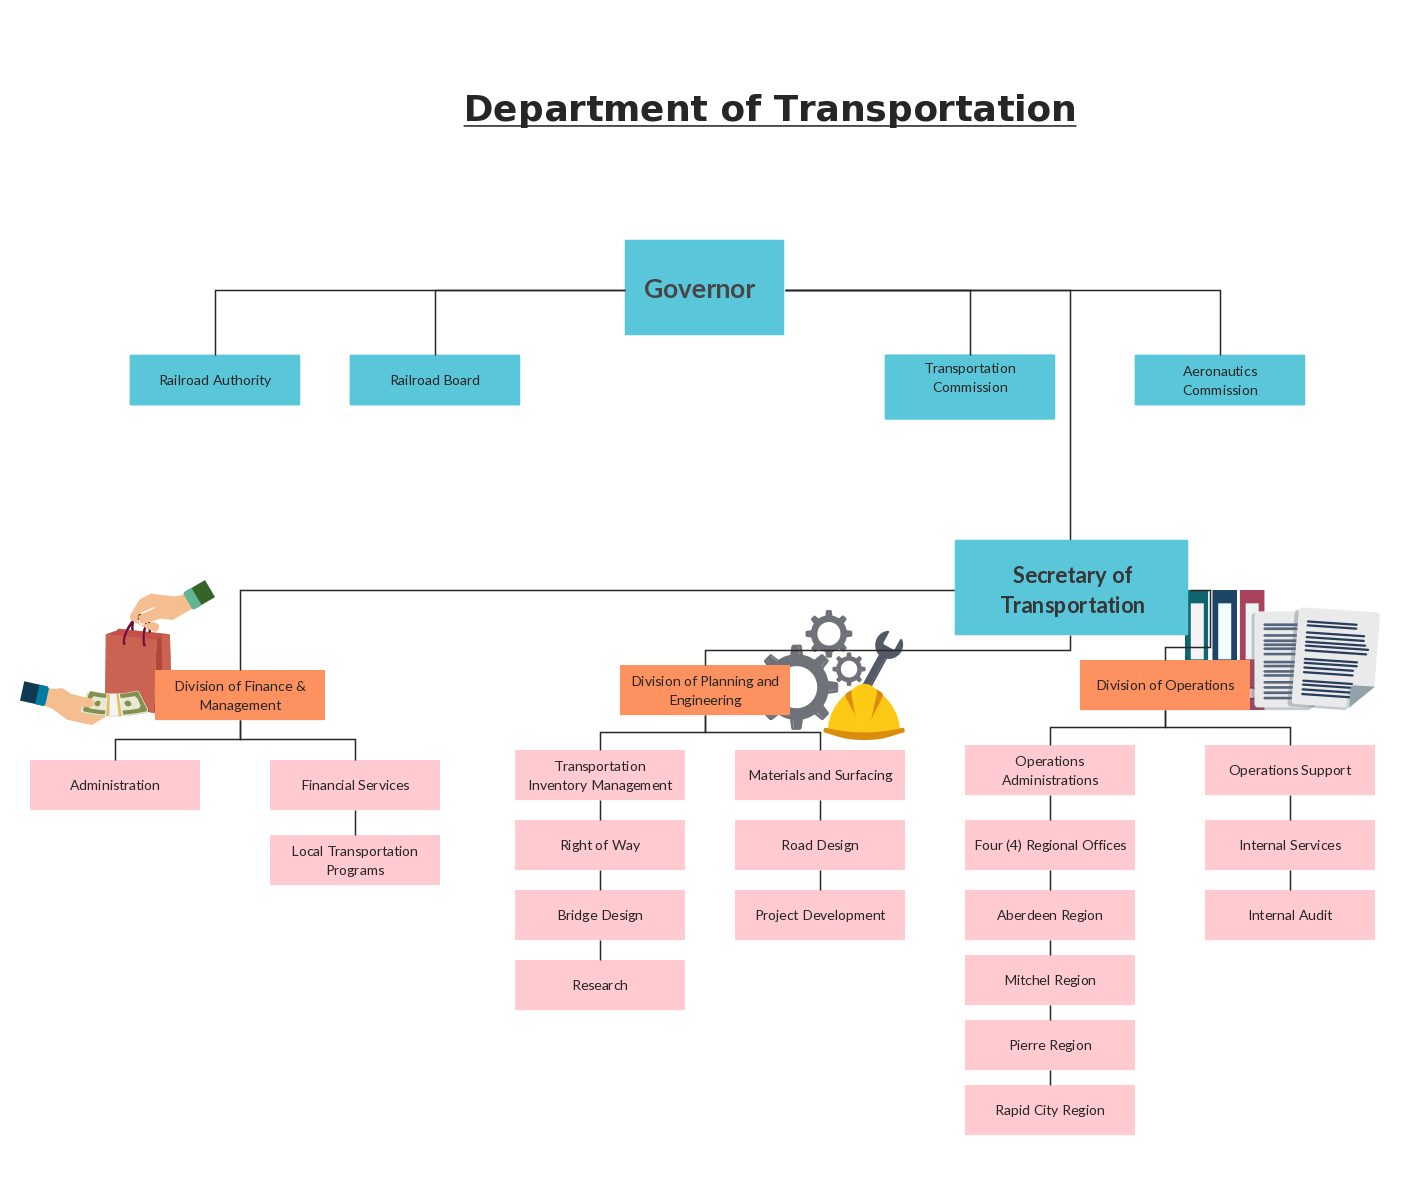 Organization Hierarchy In The Department Of Transportation You